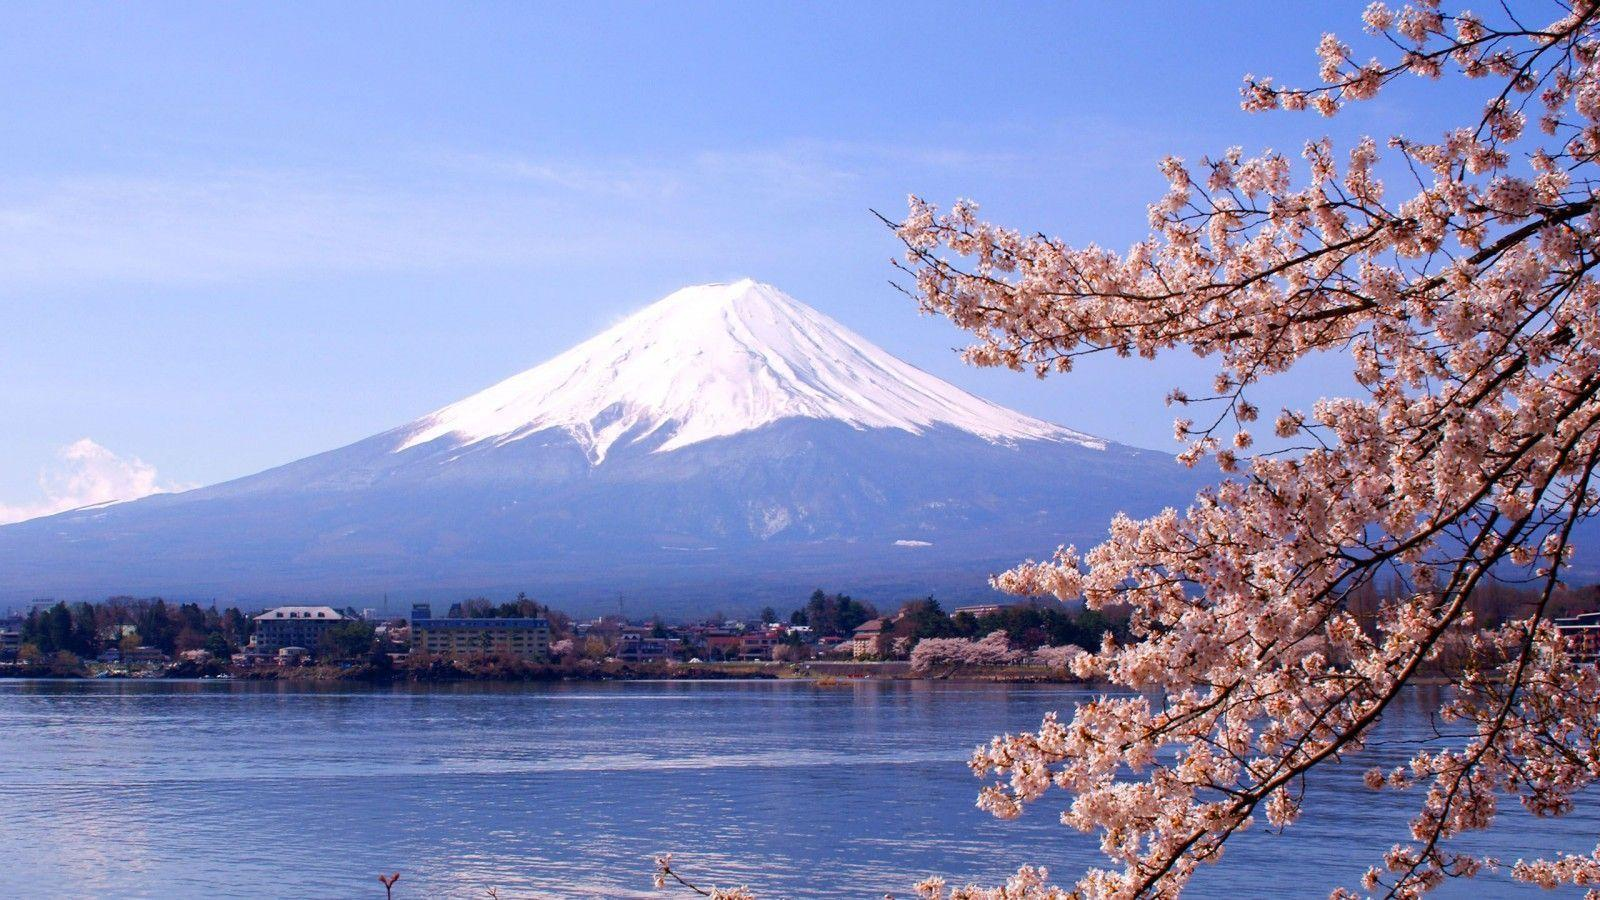 Japanese Landscape Photos Image 6 HD Wallpapers